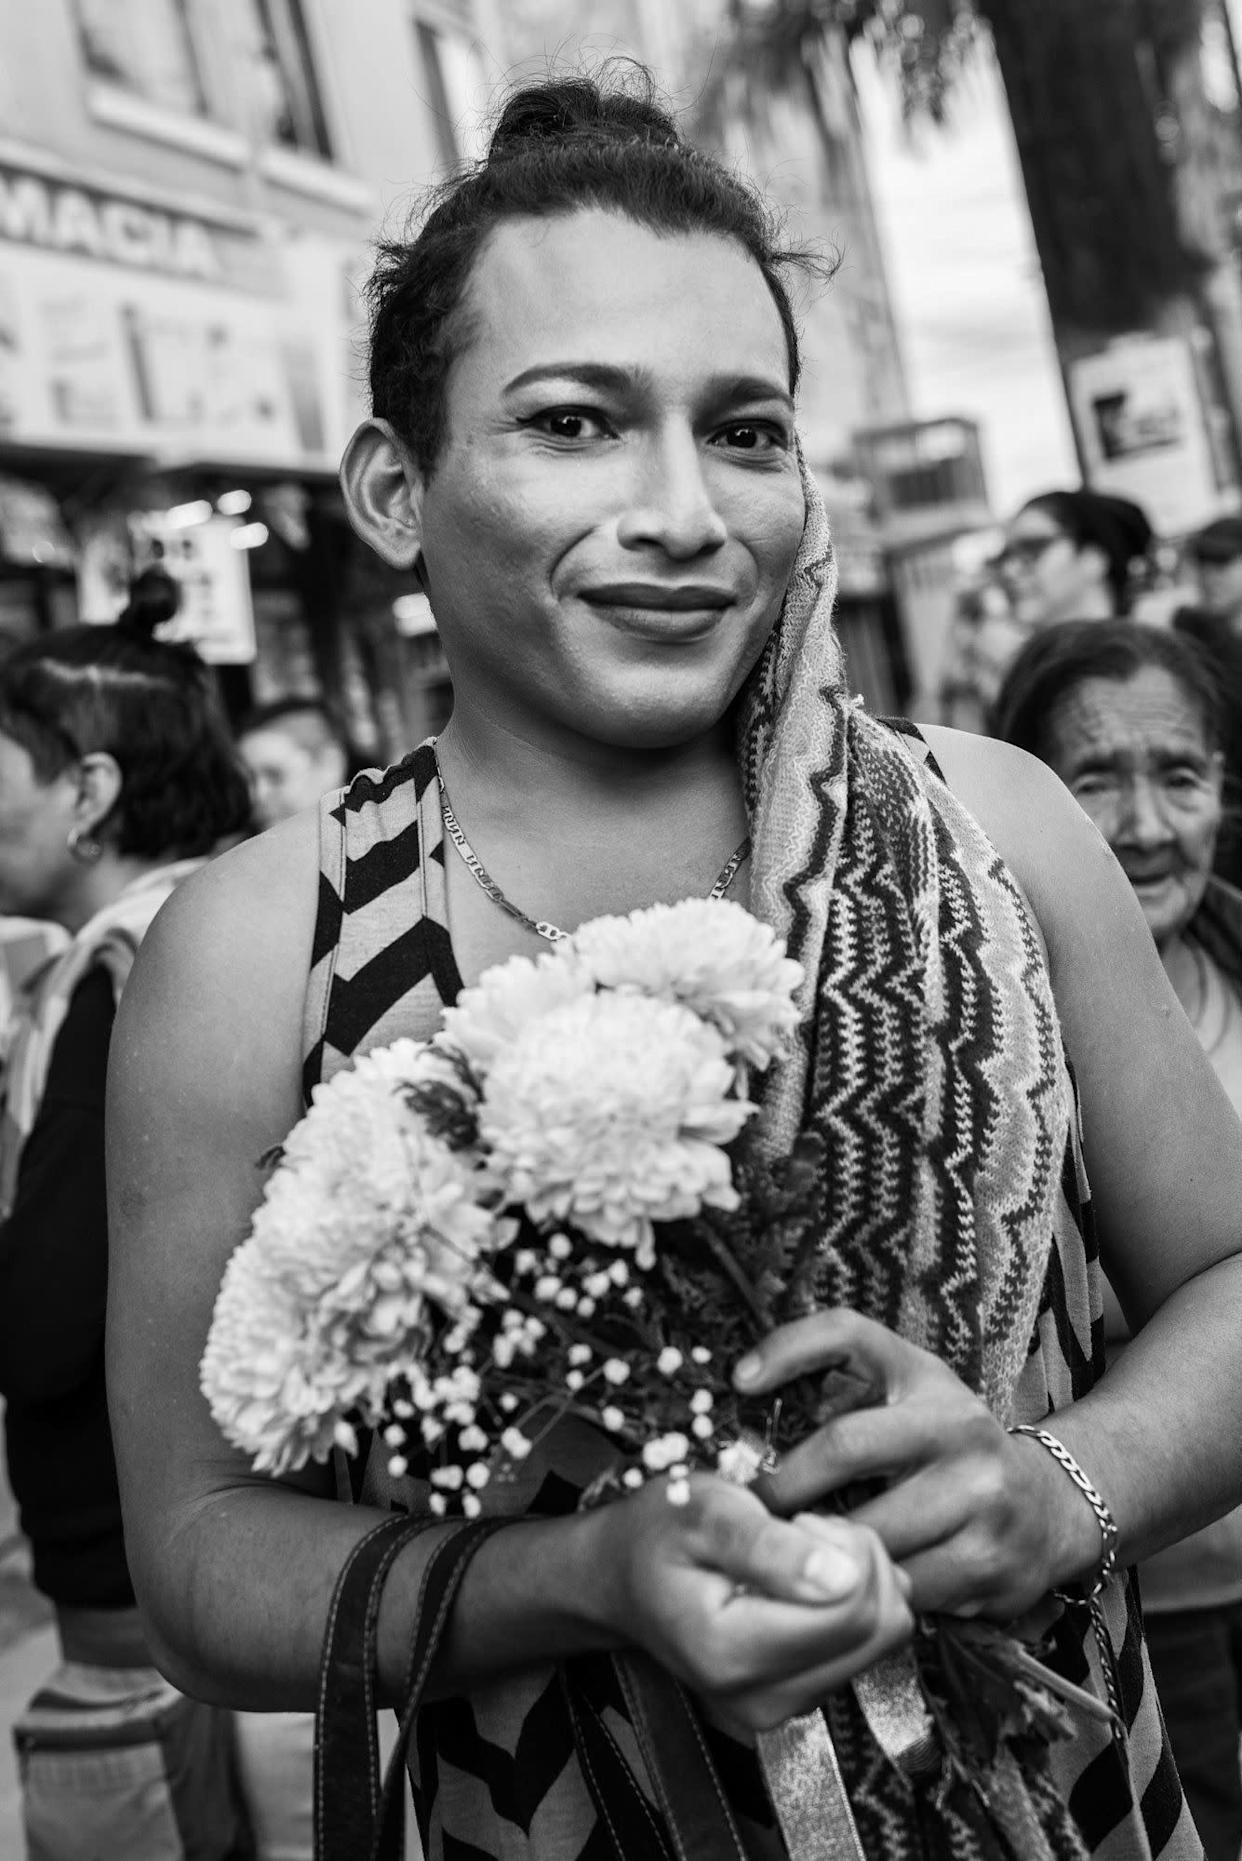 Mar is a member of the migrant caravan from Honduras and participated in an LGBTQ wedding in Tijuana, Mexico. Same-sex marriage is illegal in Honduras.